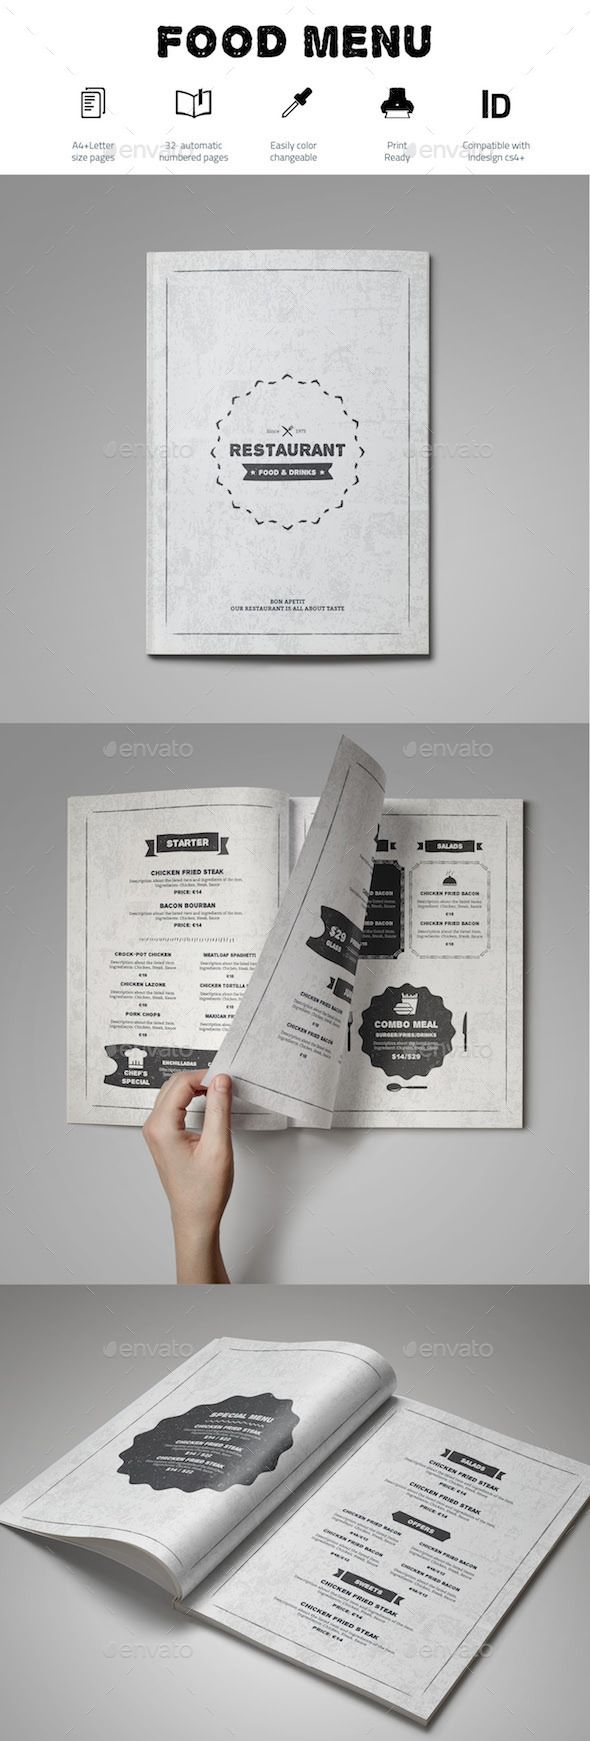 Food Menu Template InDesign INDD #design Download: http://graphicriver.net/item/food-menu-template/13914009?ref=ksioks